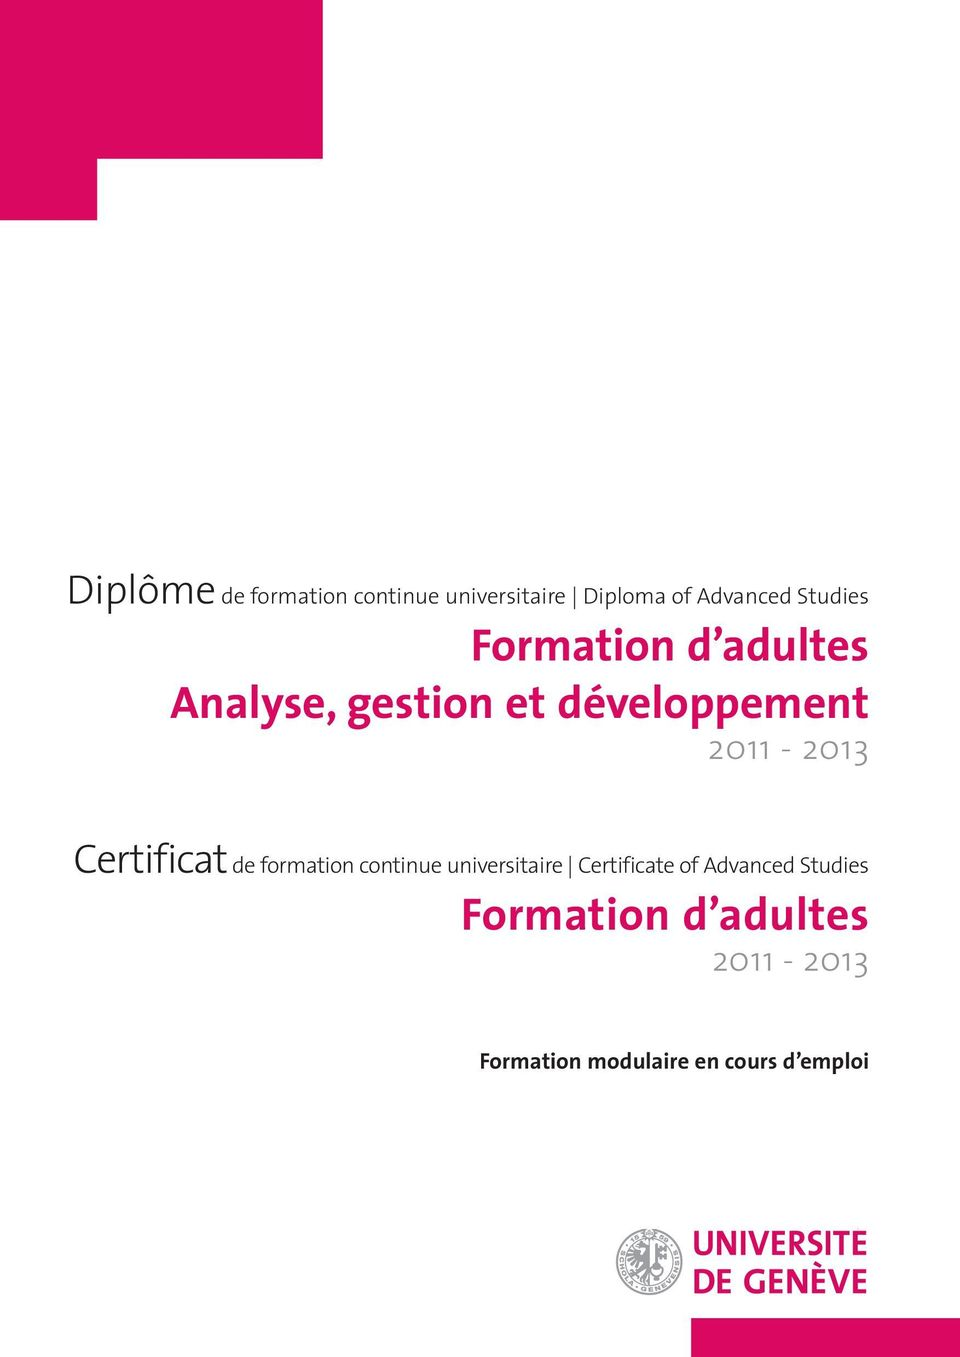 2011-2013 Certificatde formation continue universitaire Certificate of